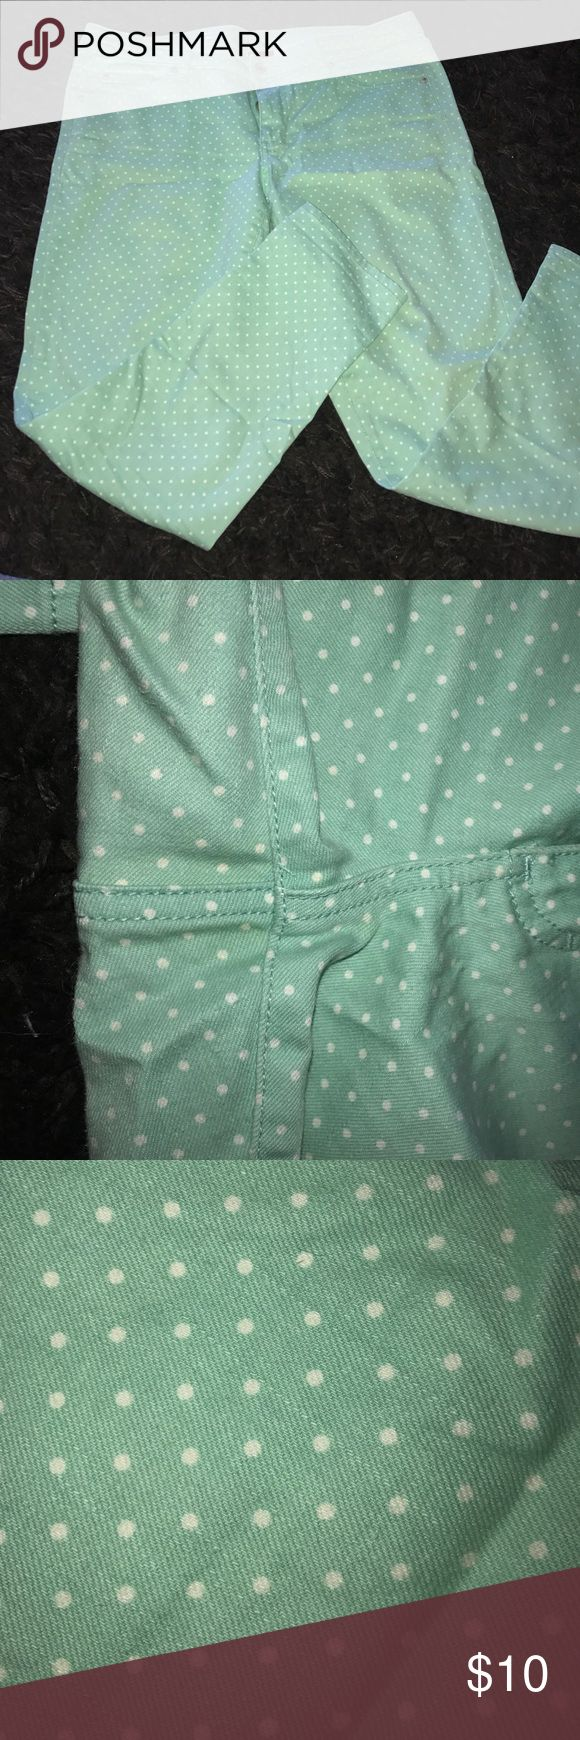 Merona Mint polka dot jeans Pre-love mint jeans. Slight pilling in crotch see photos. Tan thread from sales tag easily cut off I'm just lazy. Not sure of the cut I'd say closer to a skinny jean but not skinny to the ankle maybe straight leg? Stain on front right have not tried to clean. Merona Jeans